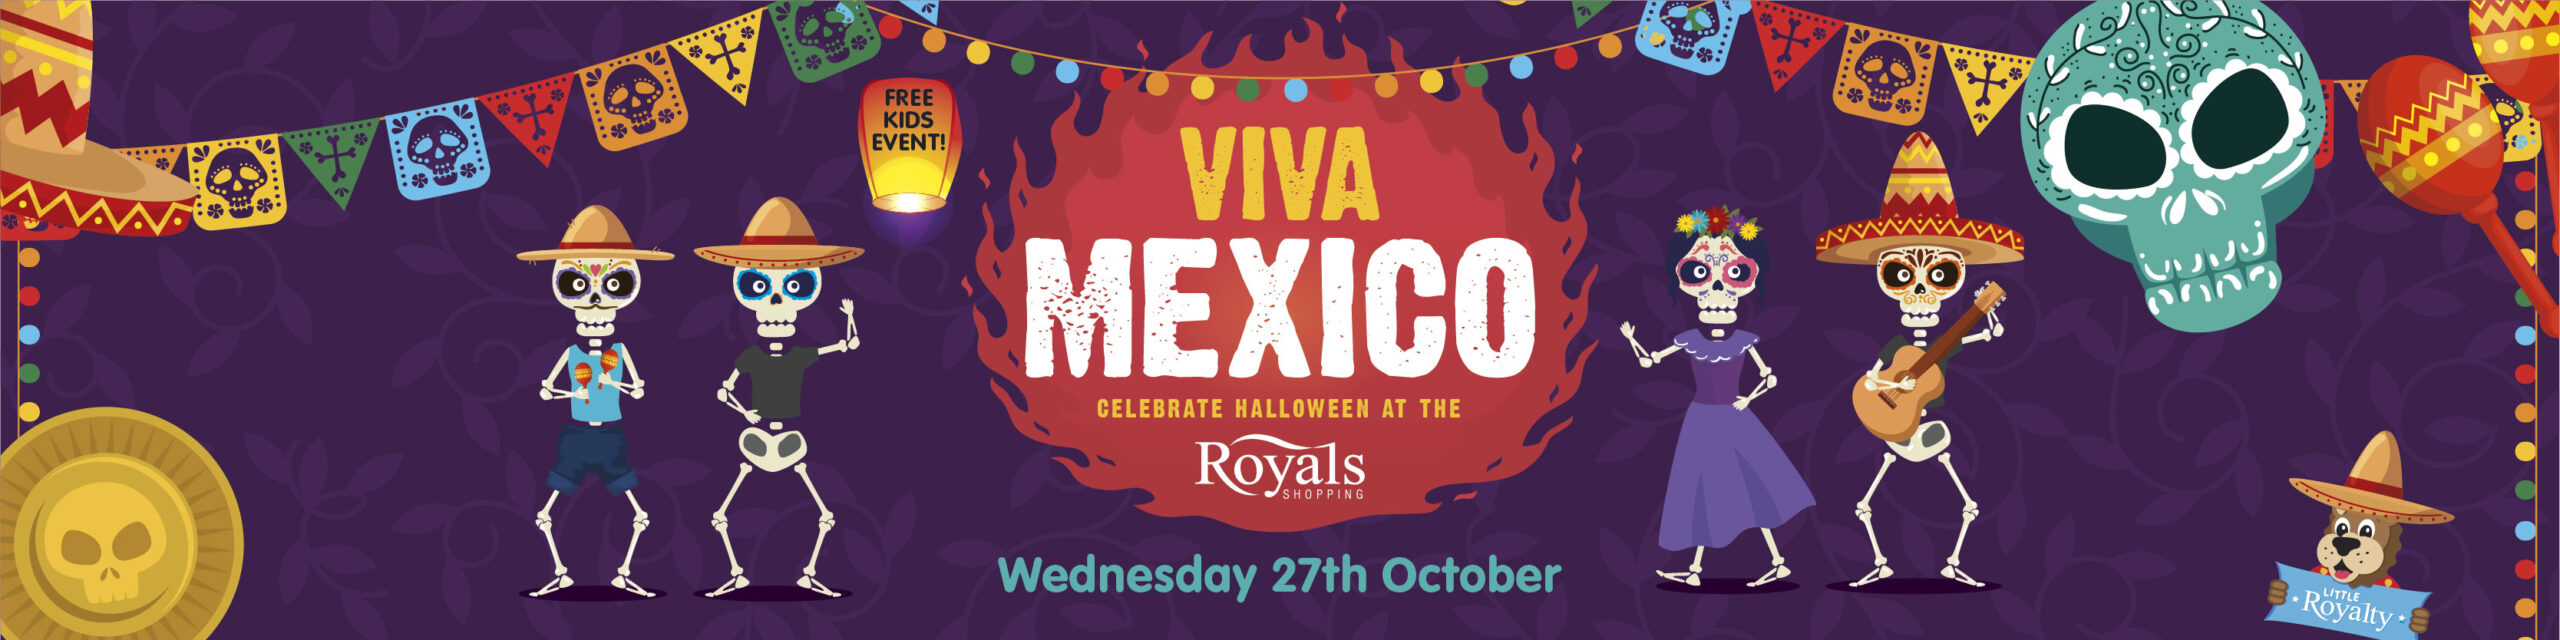 FREE kids Halloween event at The Royals